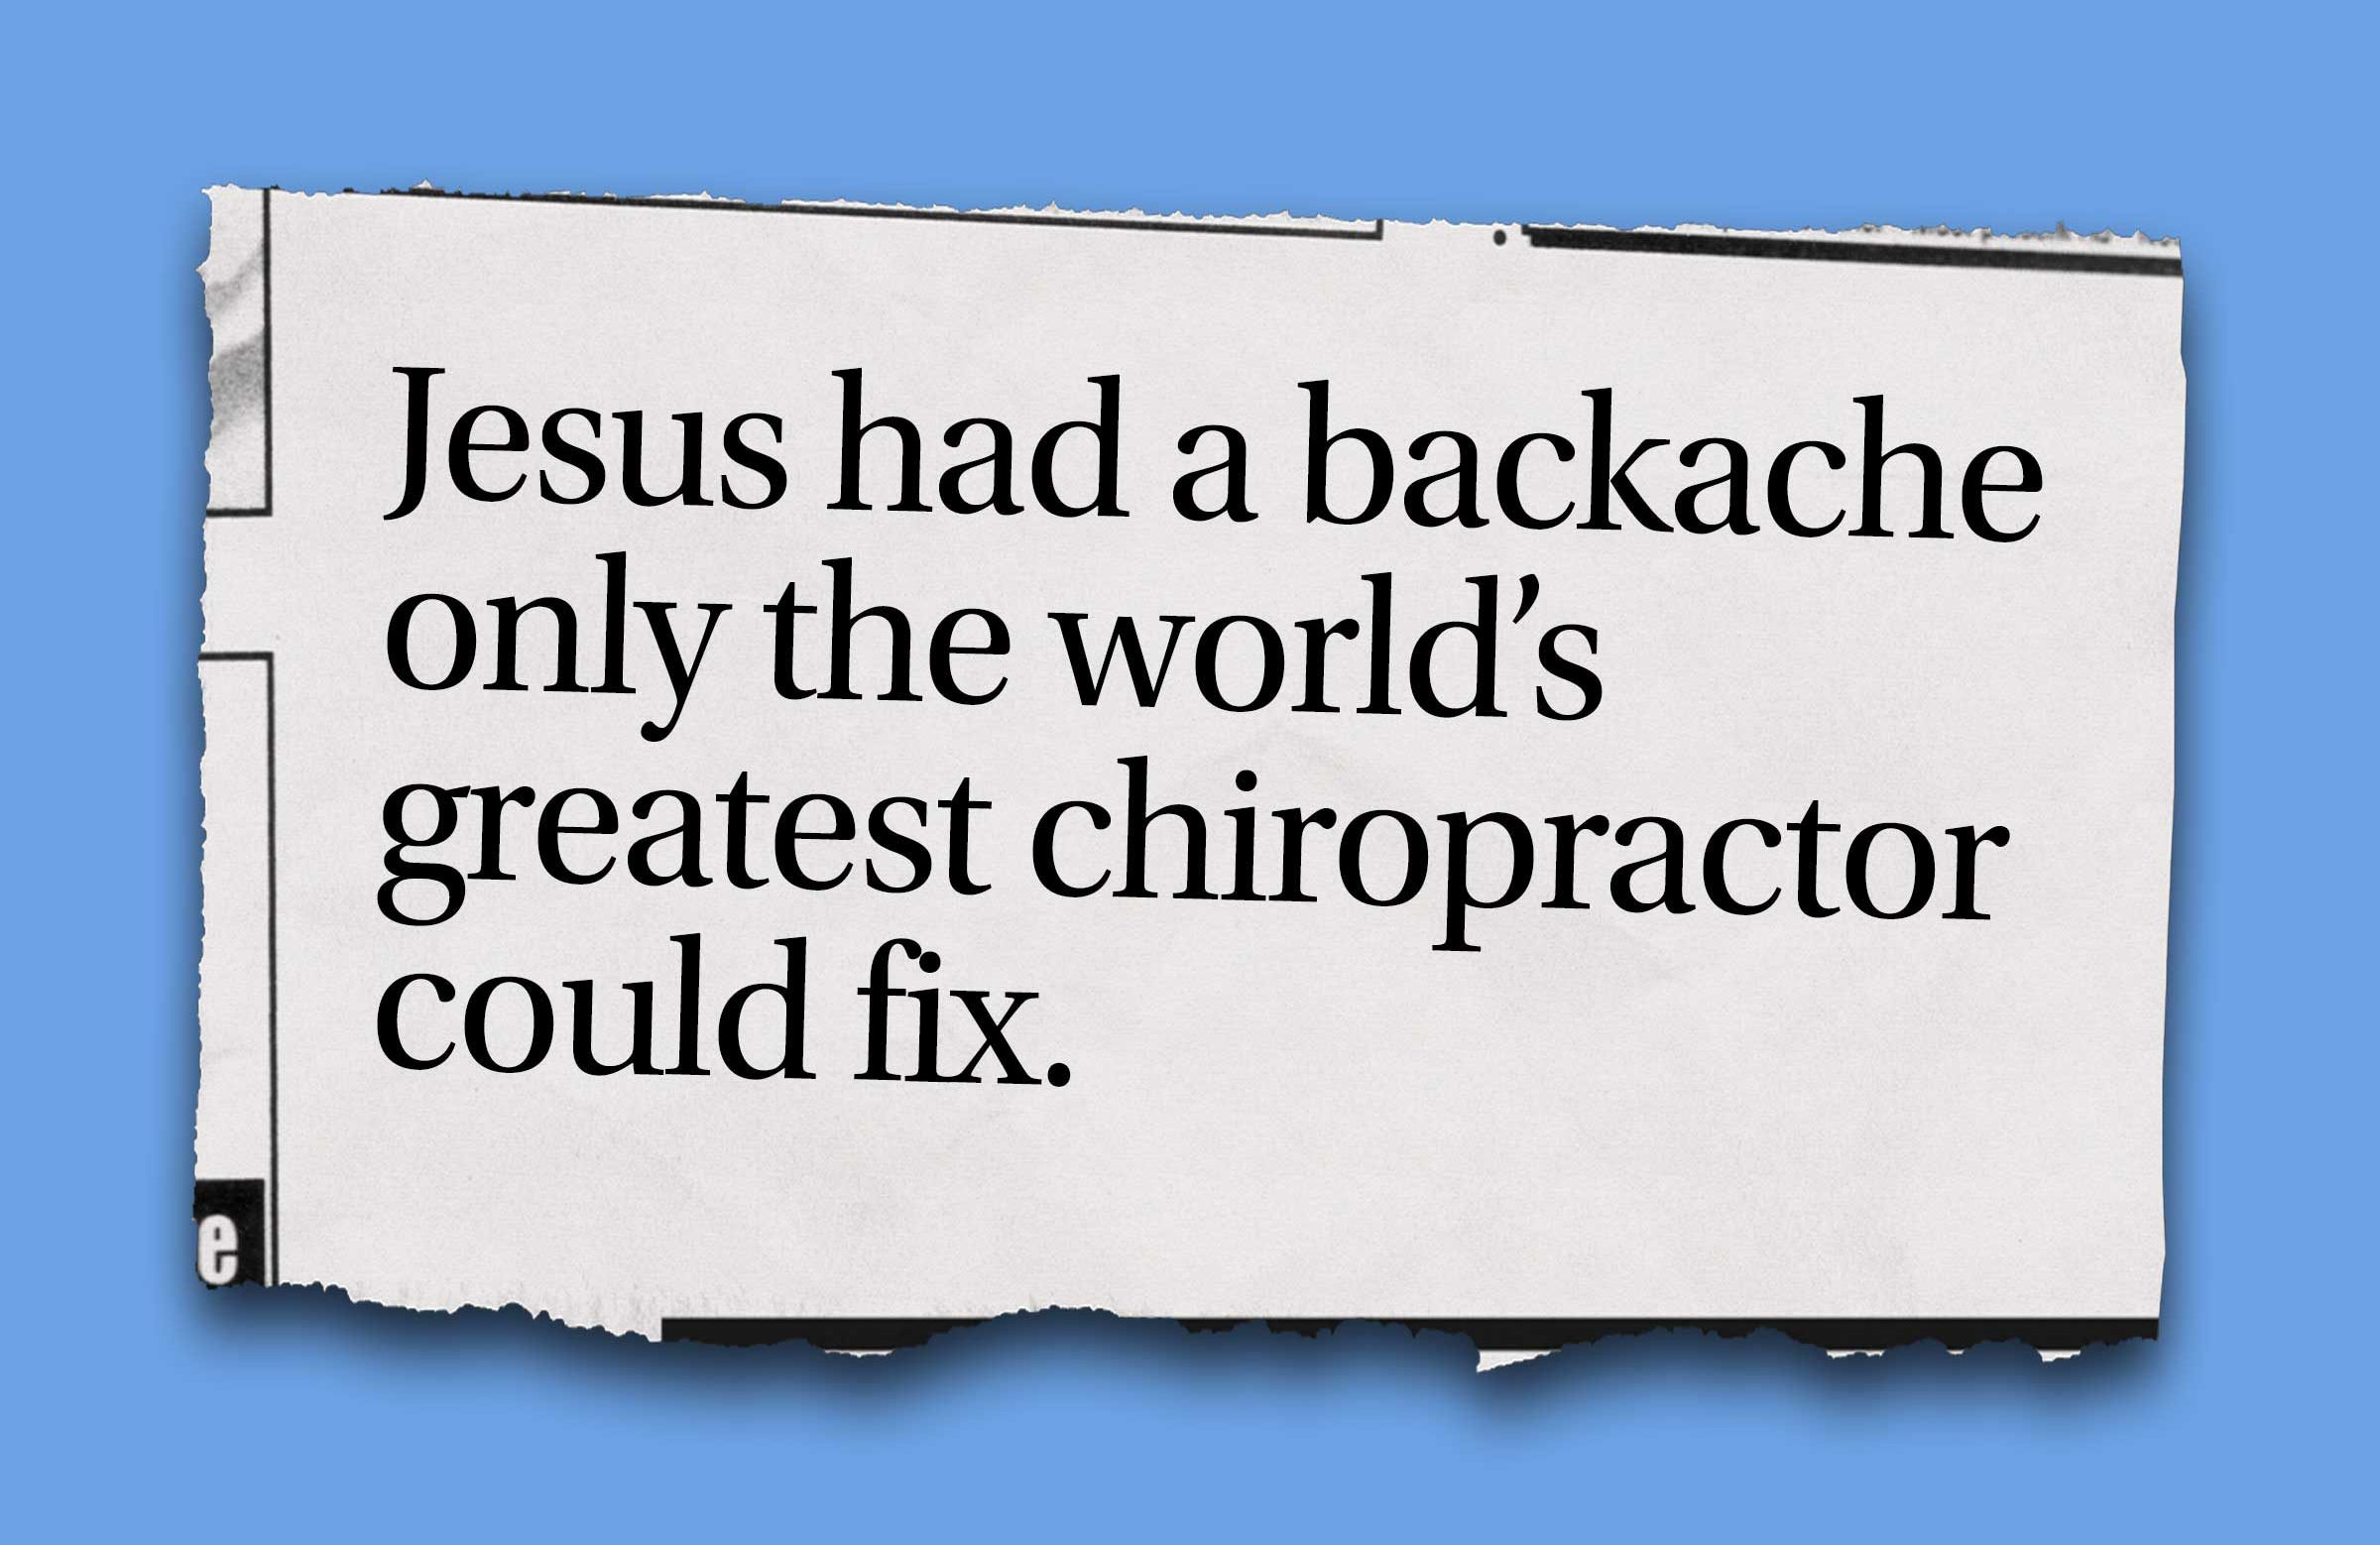 """Jesus had a backache only the world's greatest chiropractor could fix."""